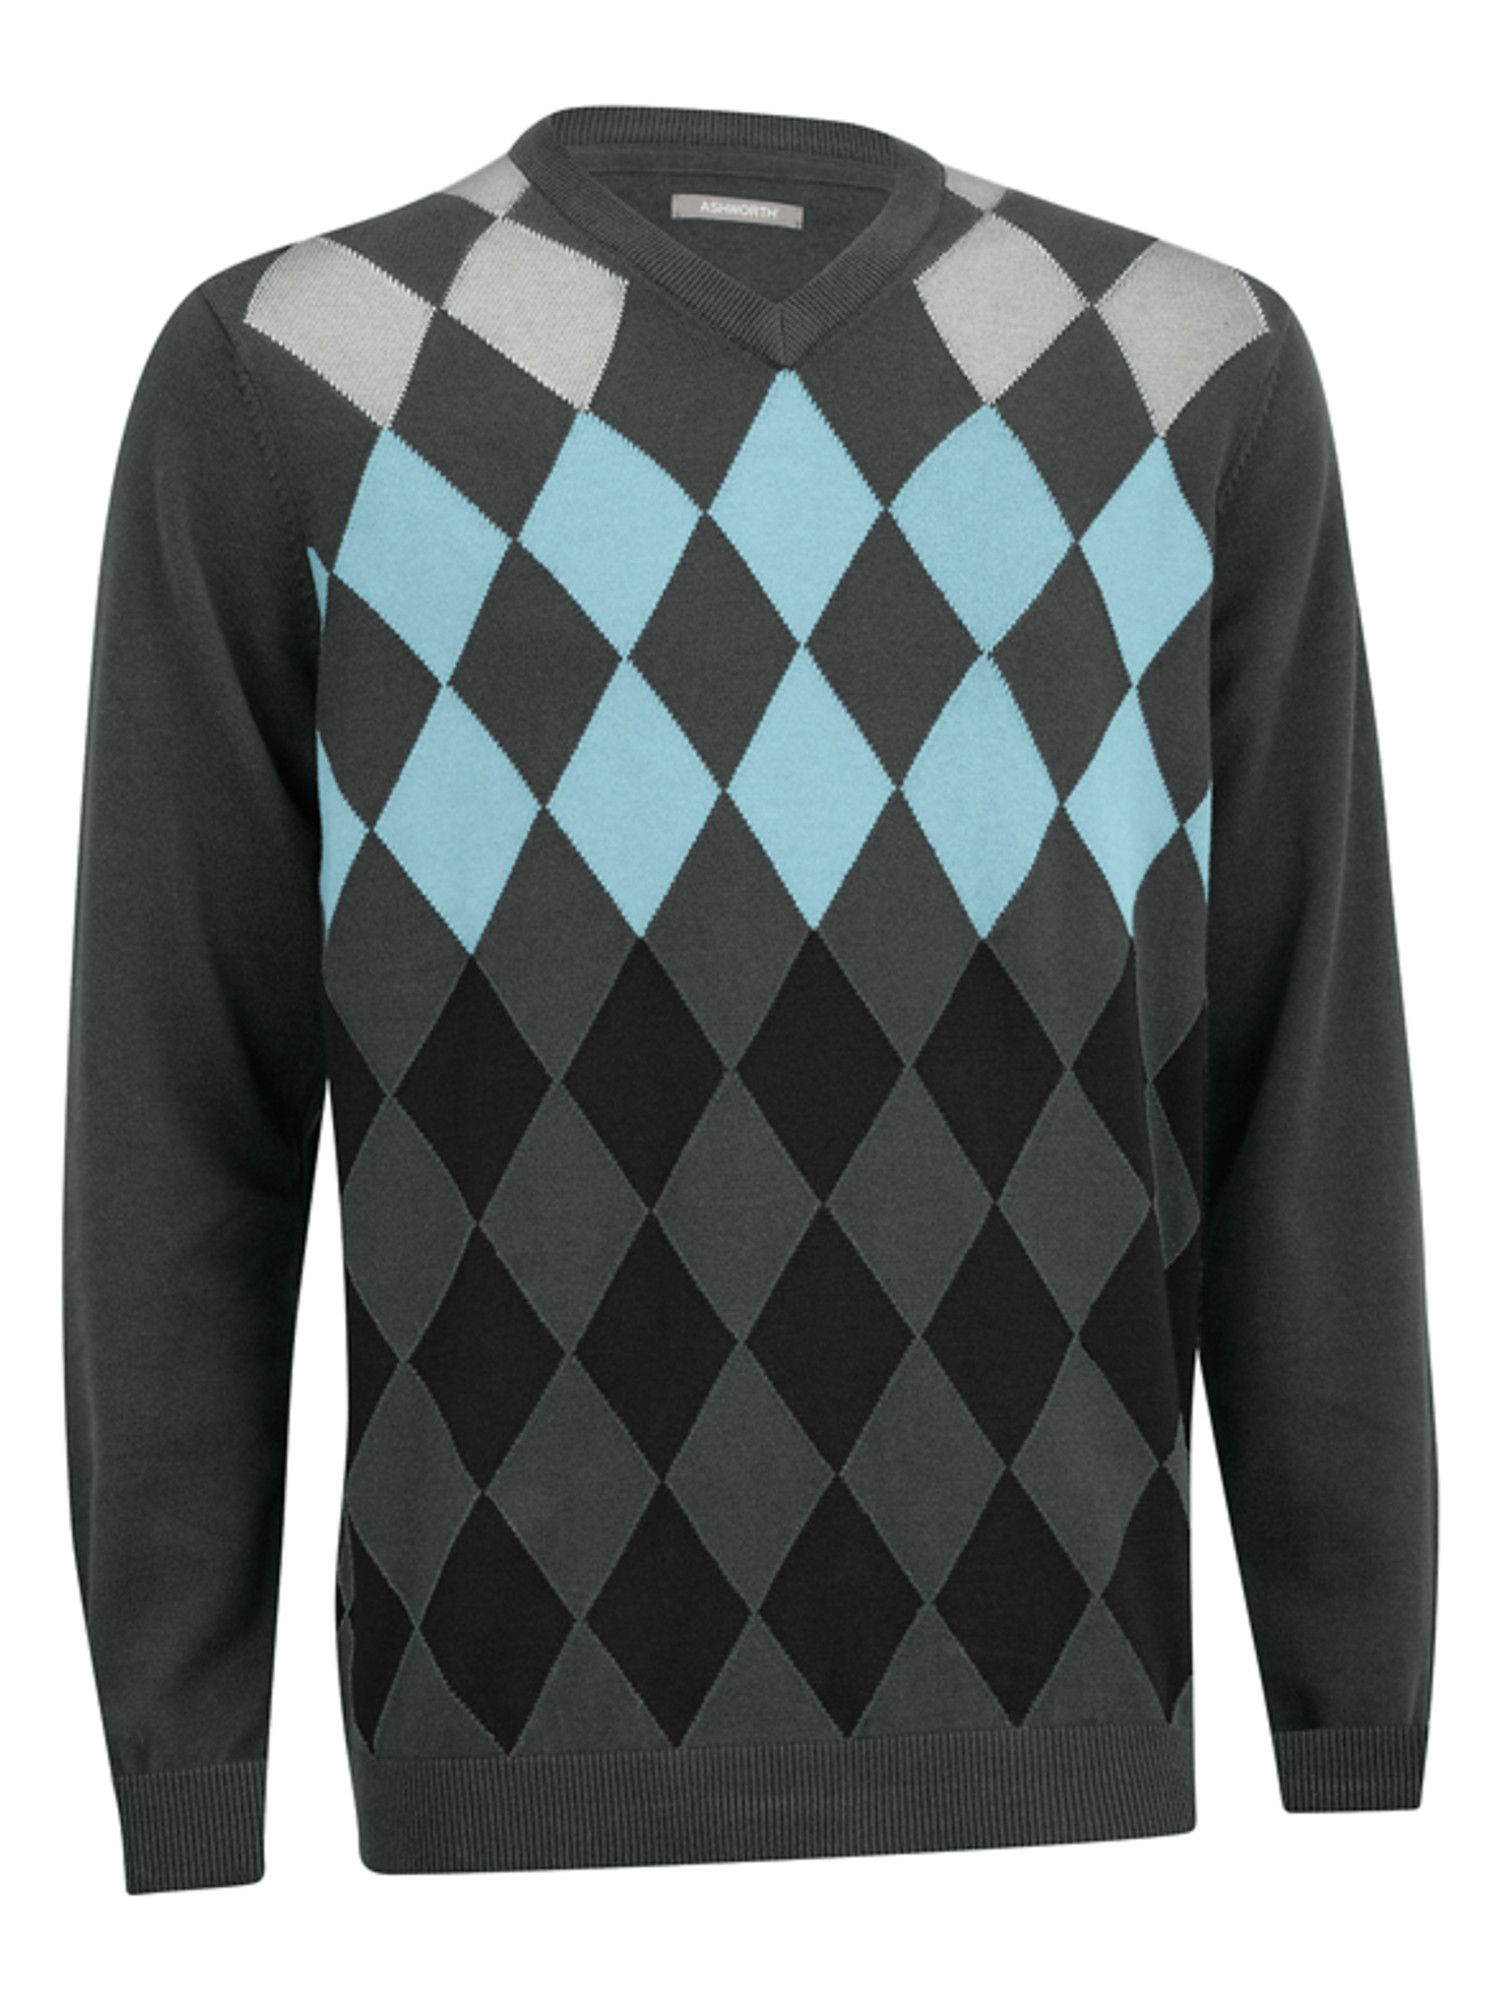 Argyle v neck sweater